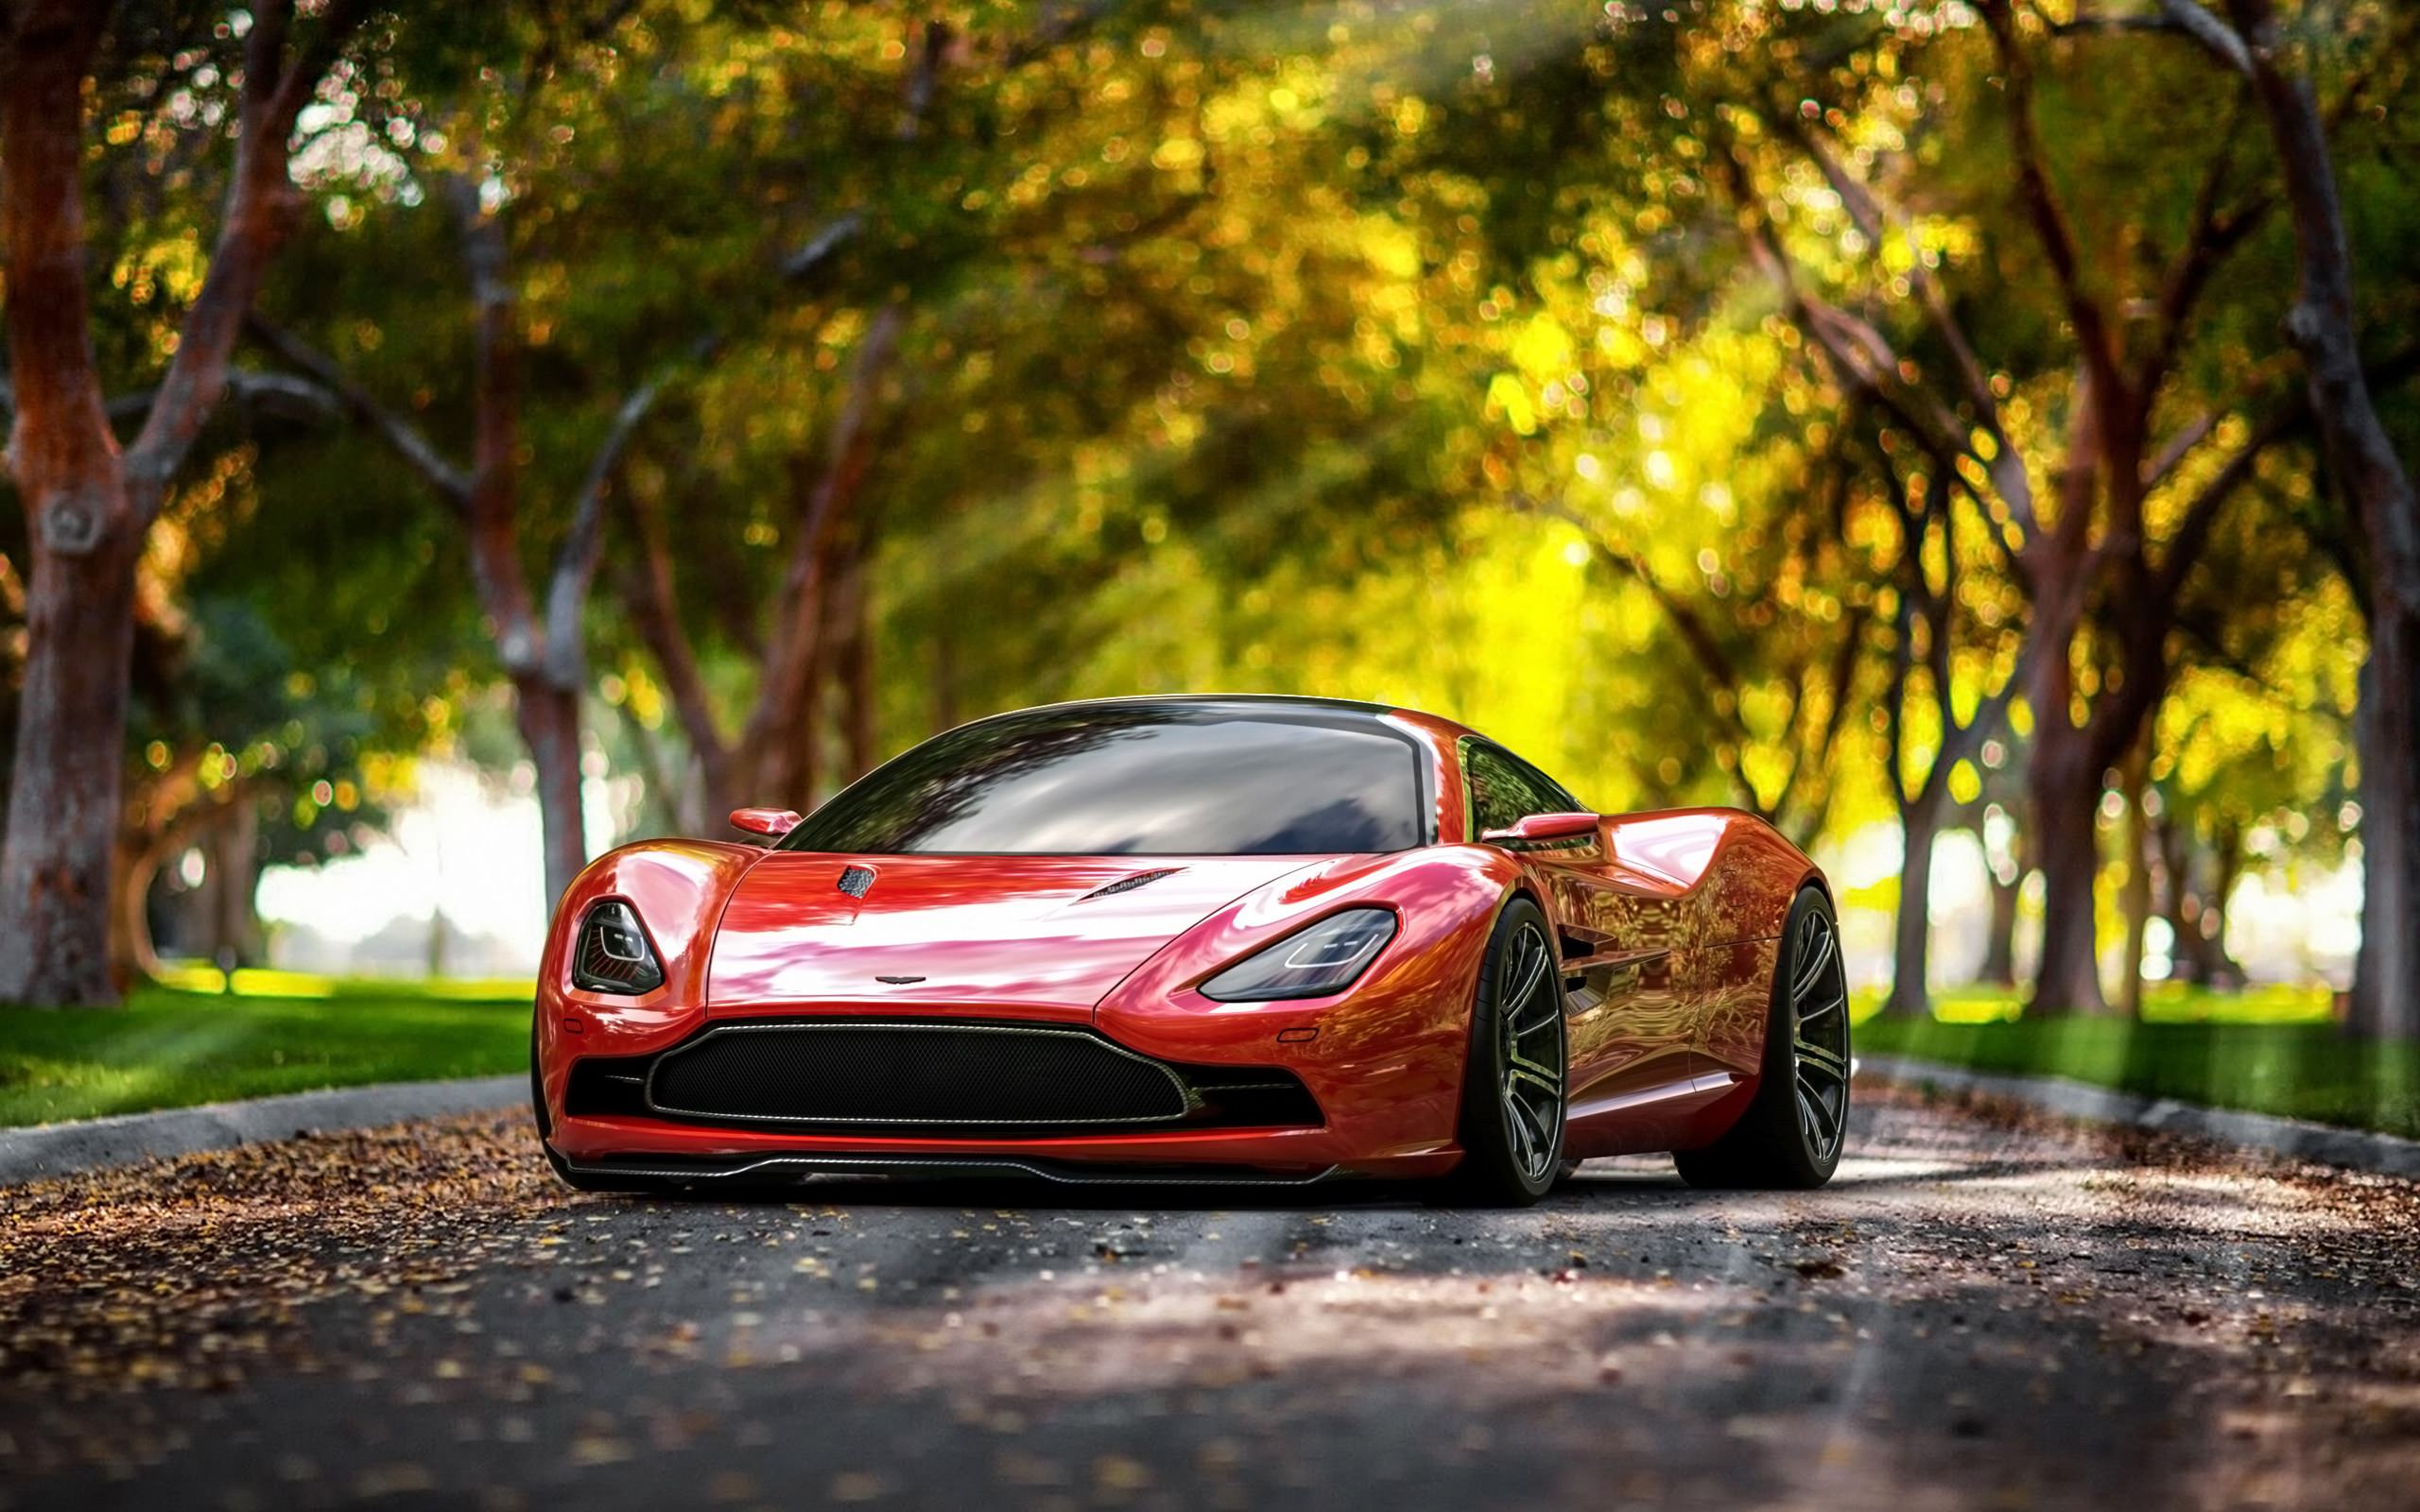 Amazing Aston Martin Car Background